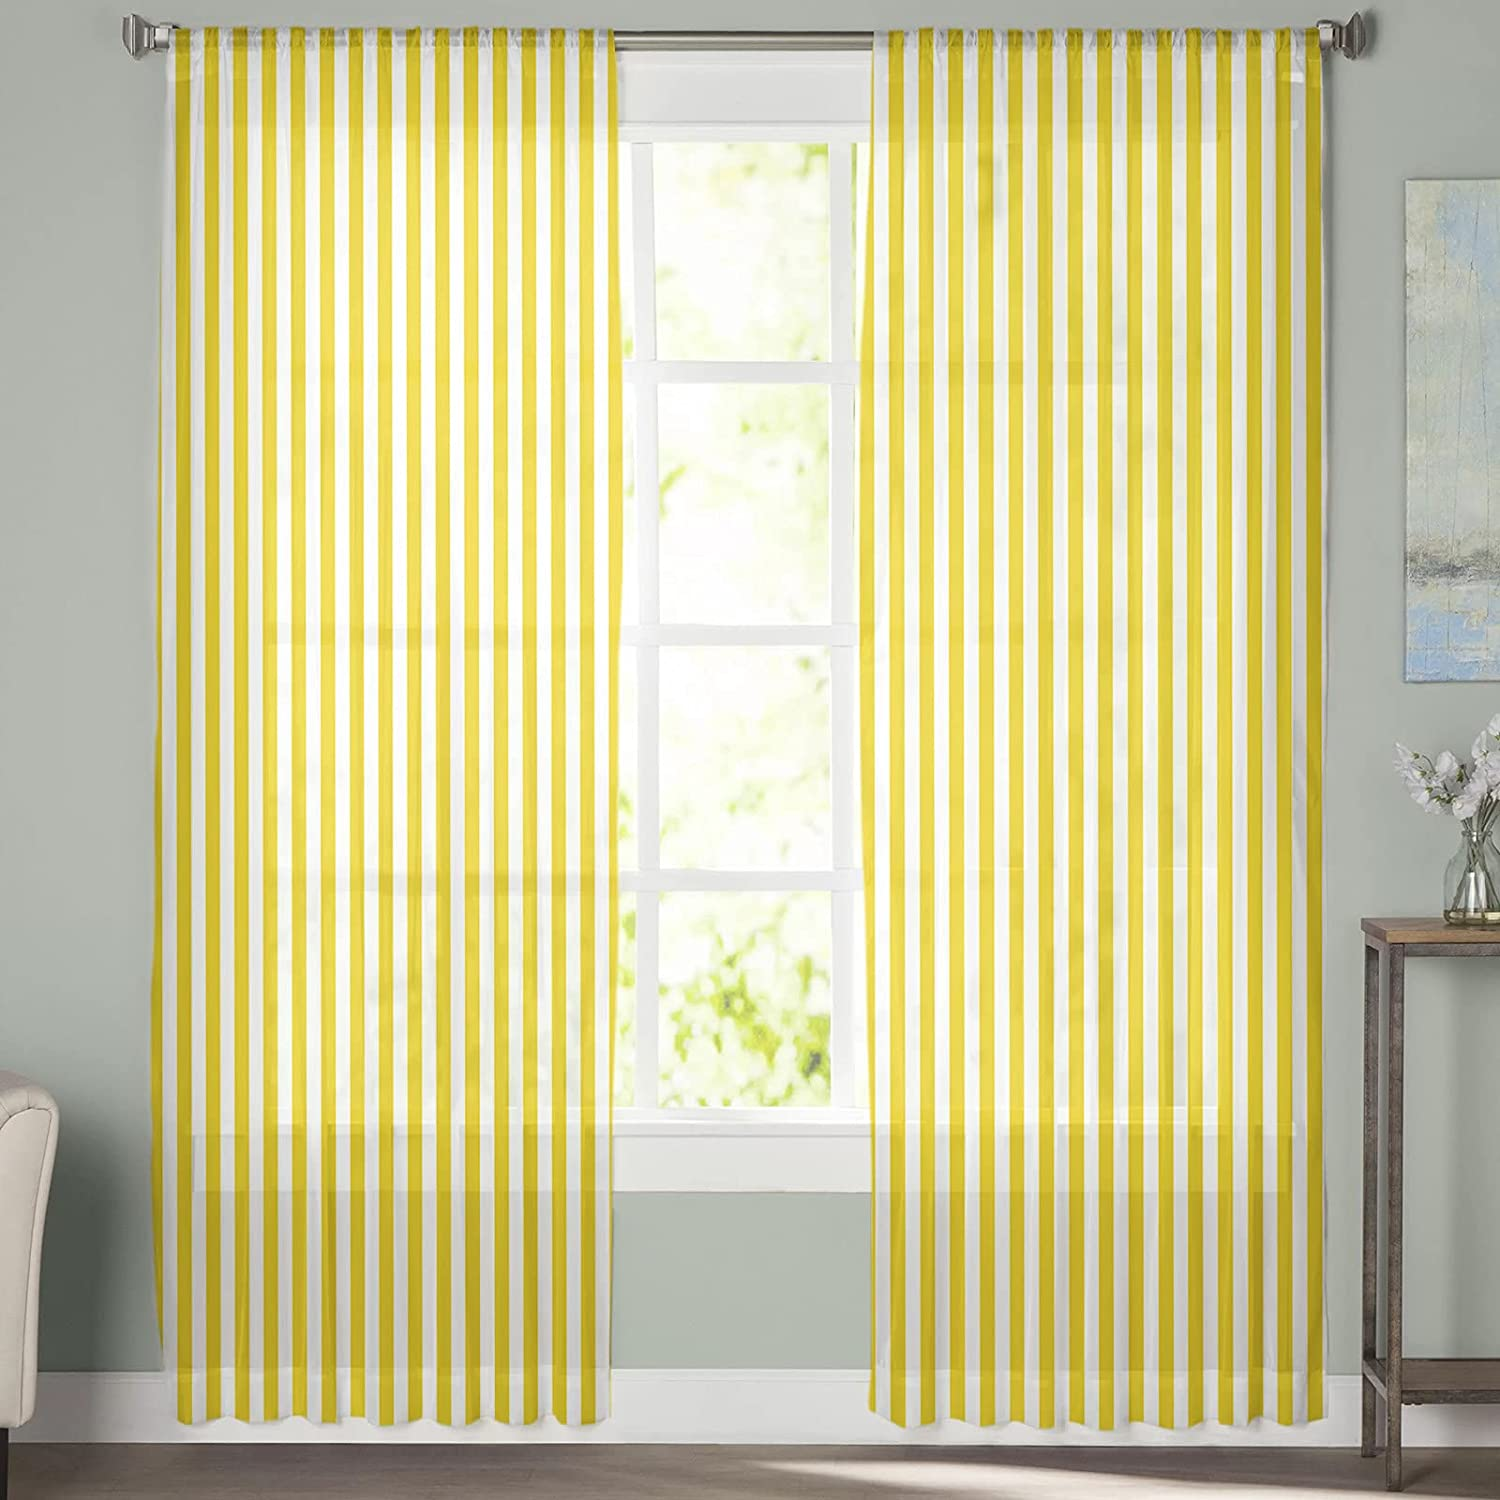 2pc Set Sheer Special sale item Curtains for Bedroom San Diego Mall Pattern Rod P Windows Simple